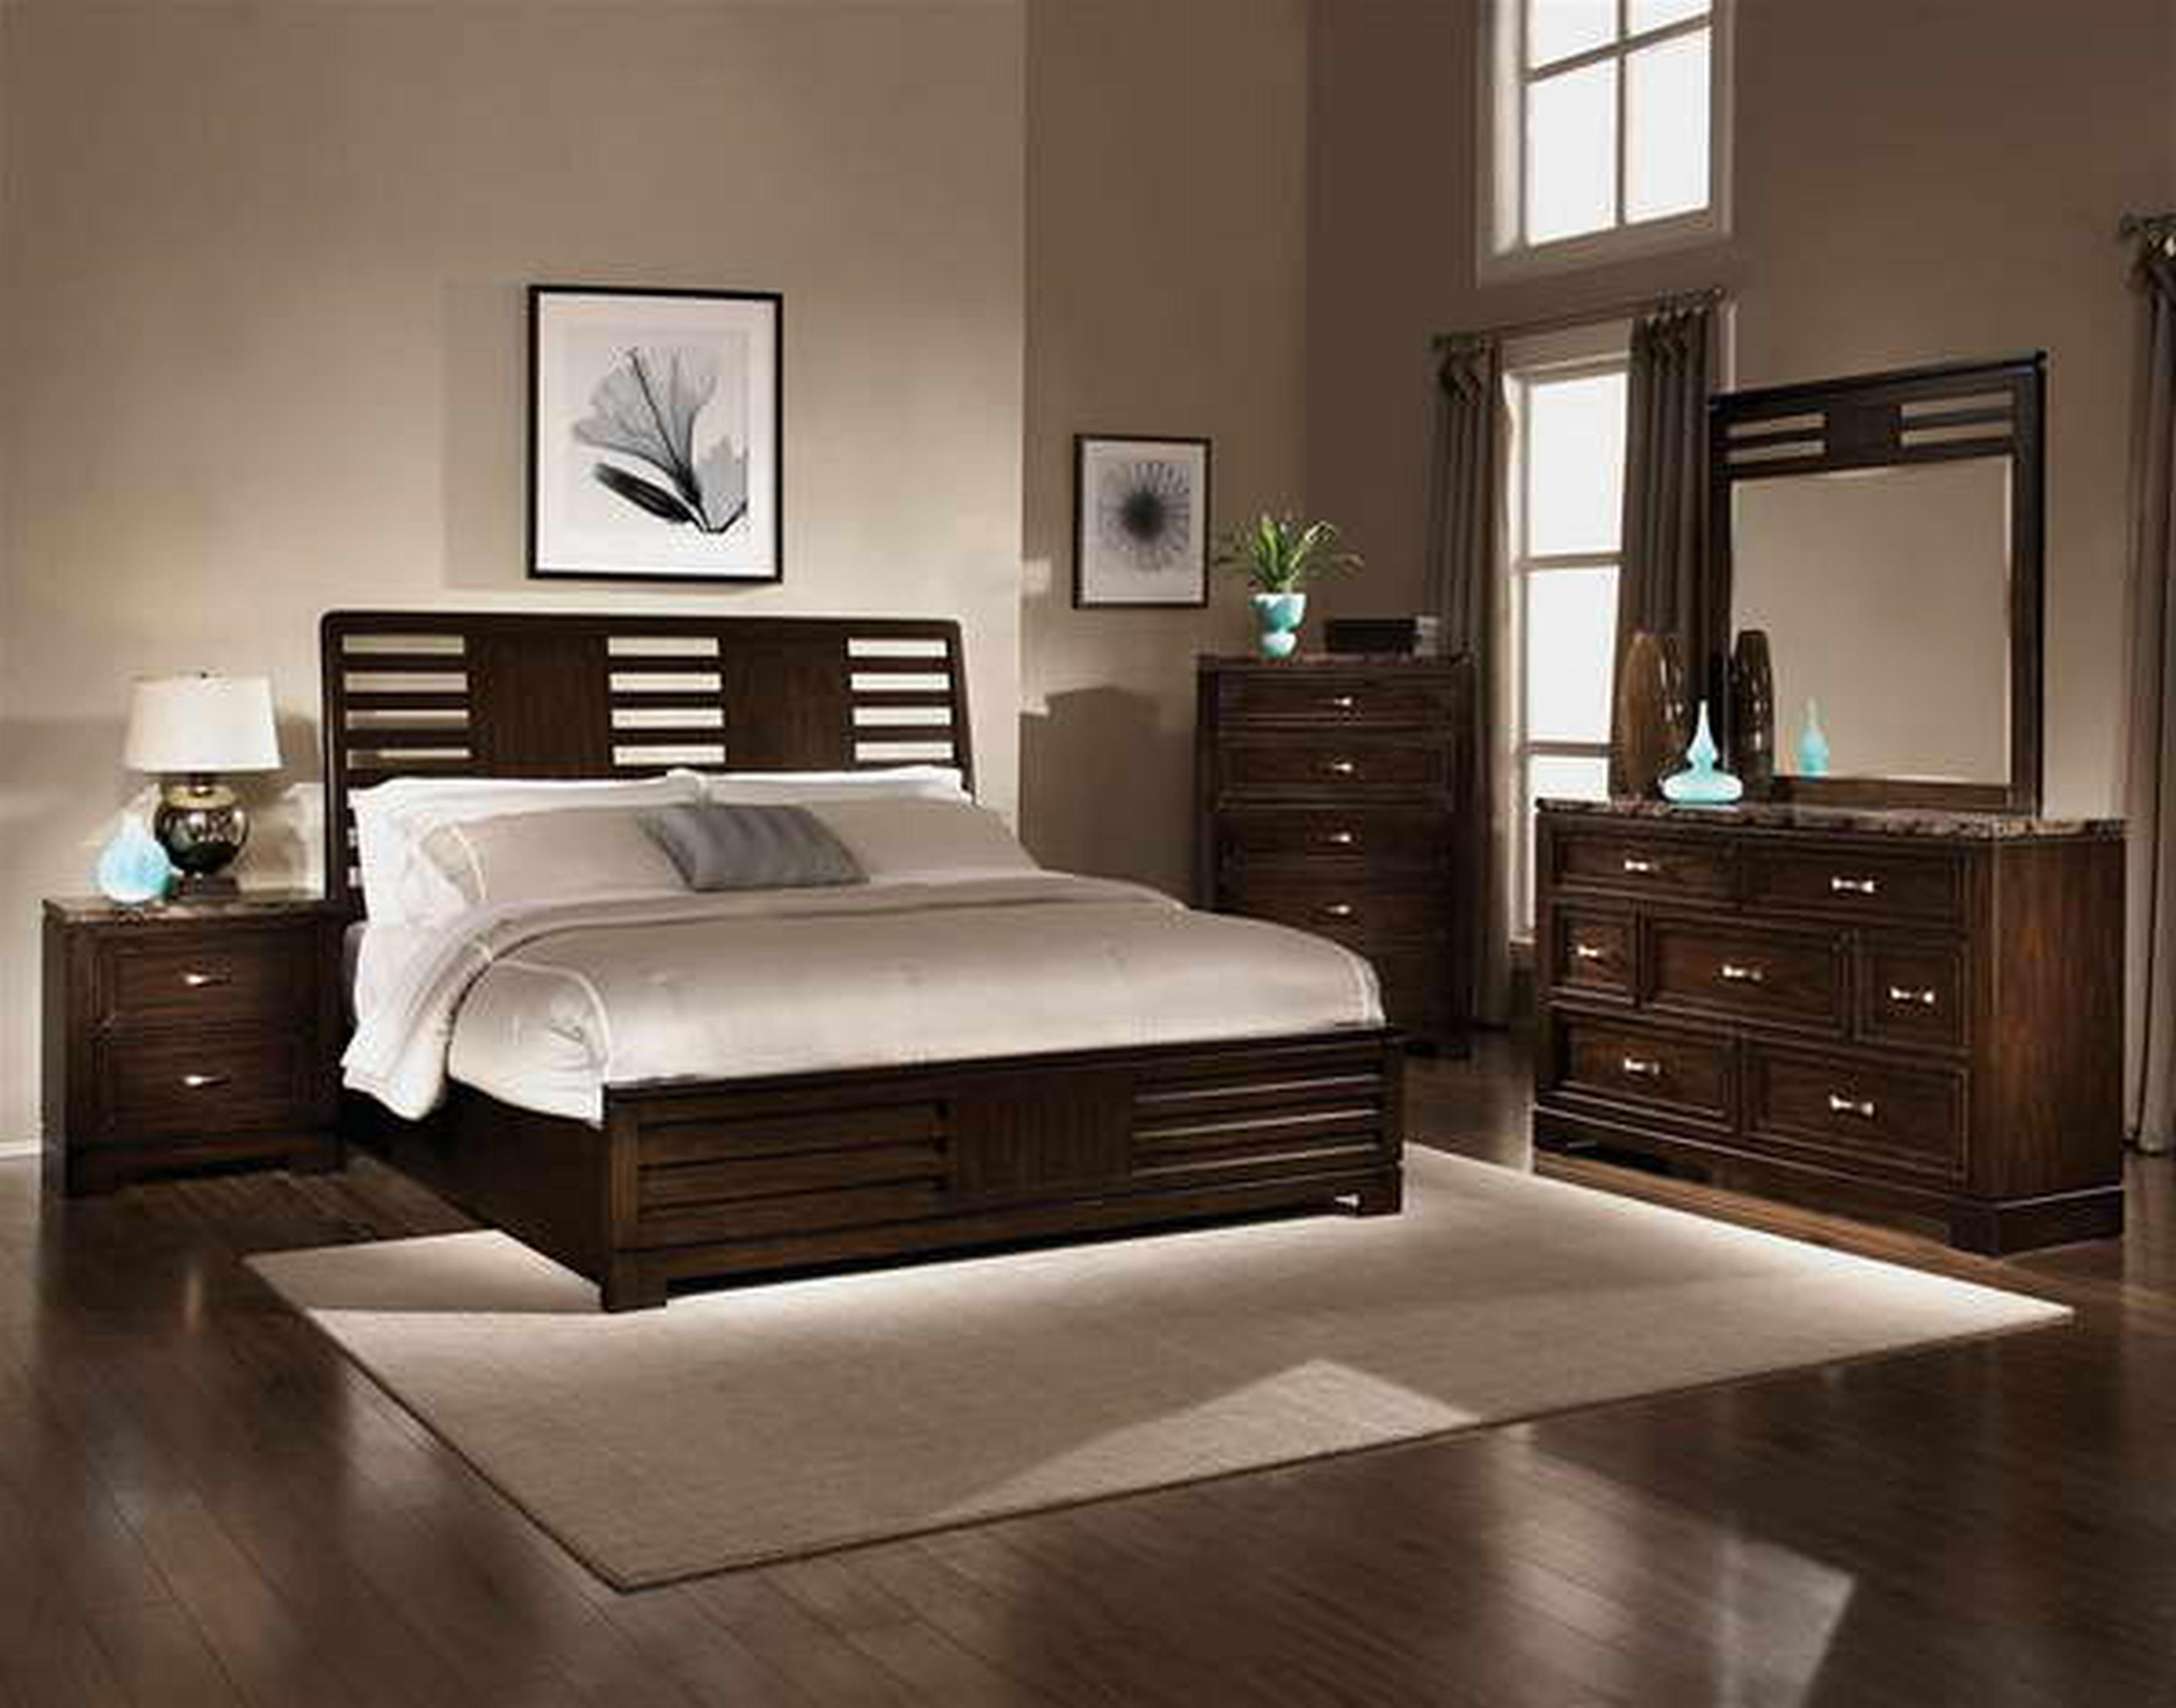 Interior Bedroom Best Paint Colors Small Spaces Brown